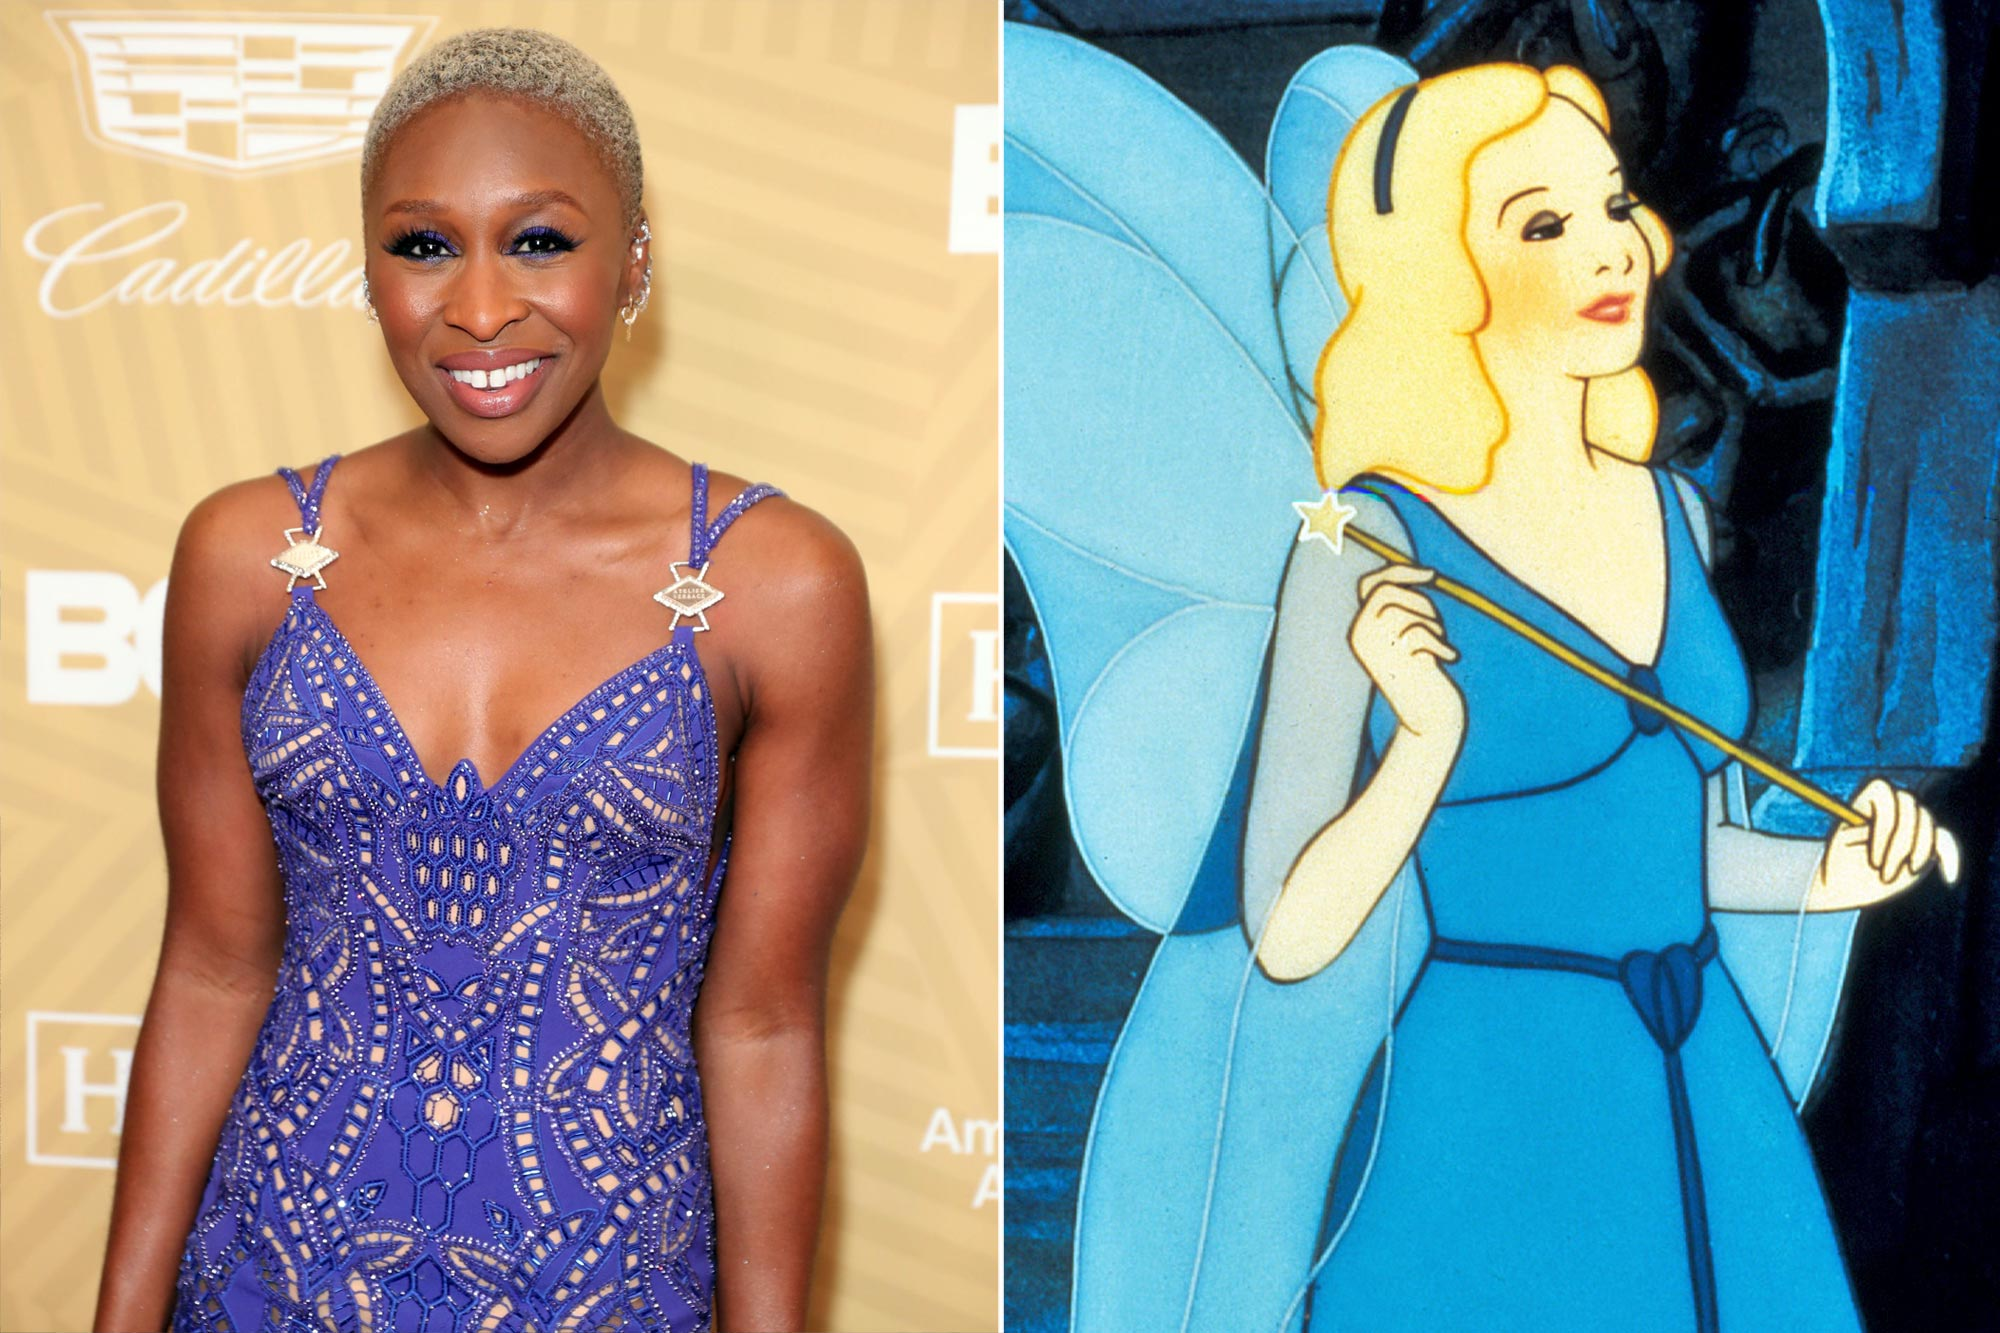 Cynthia Erivo as The Blue Fairy